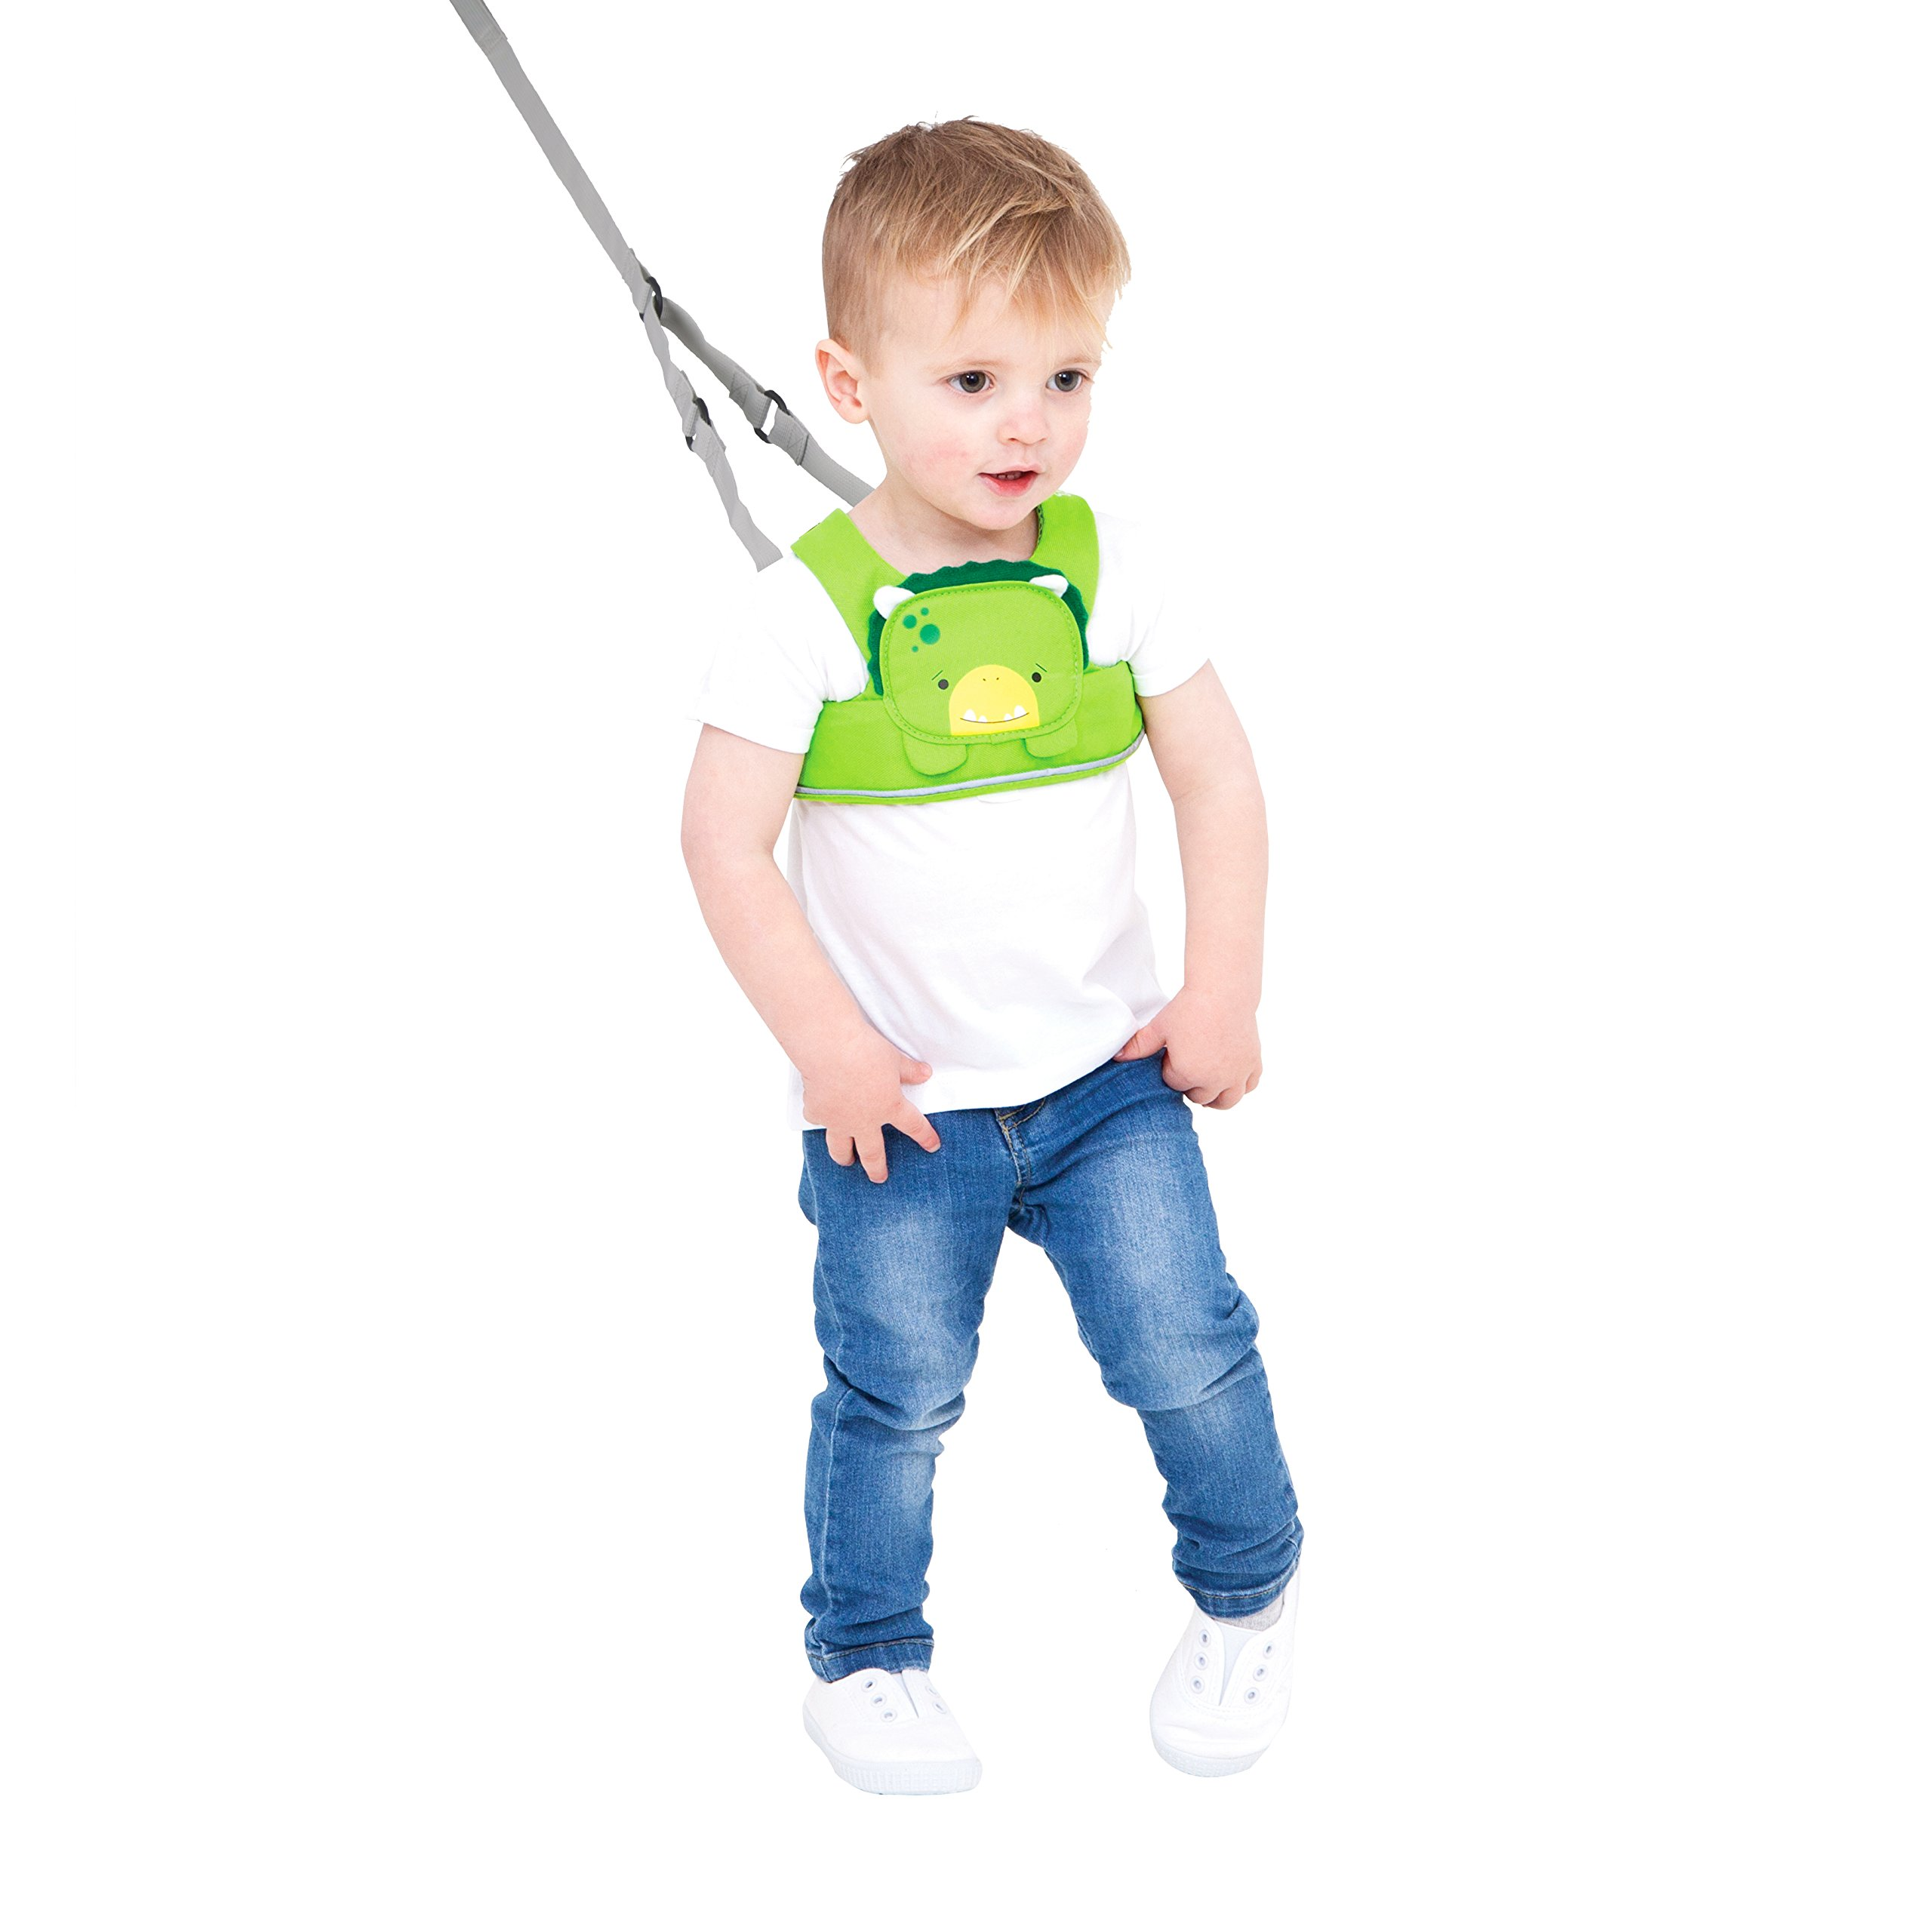 Trunki ToddlePak - Fuss Free Toddler Walking Leash & Kid's Safety Harness – Dudley Dinosaur (Green) by Trunki (Image #1)